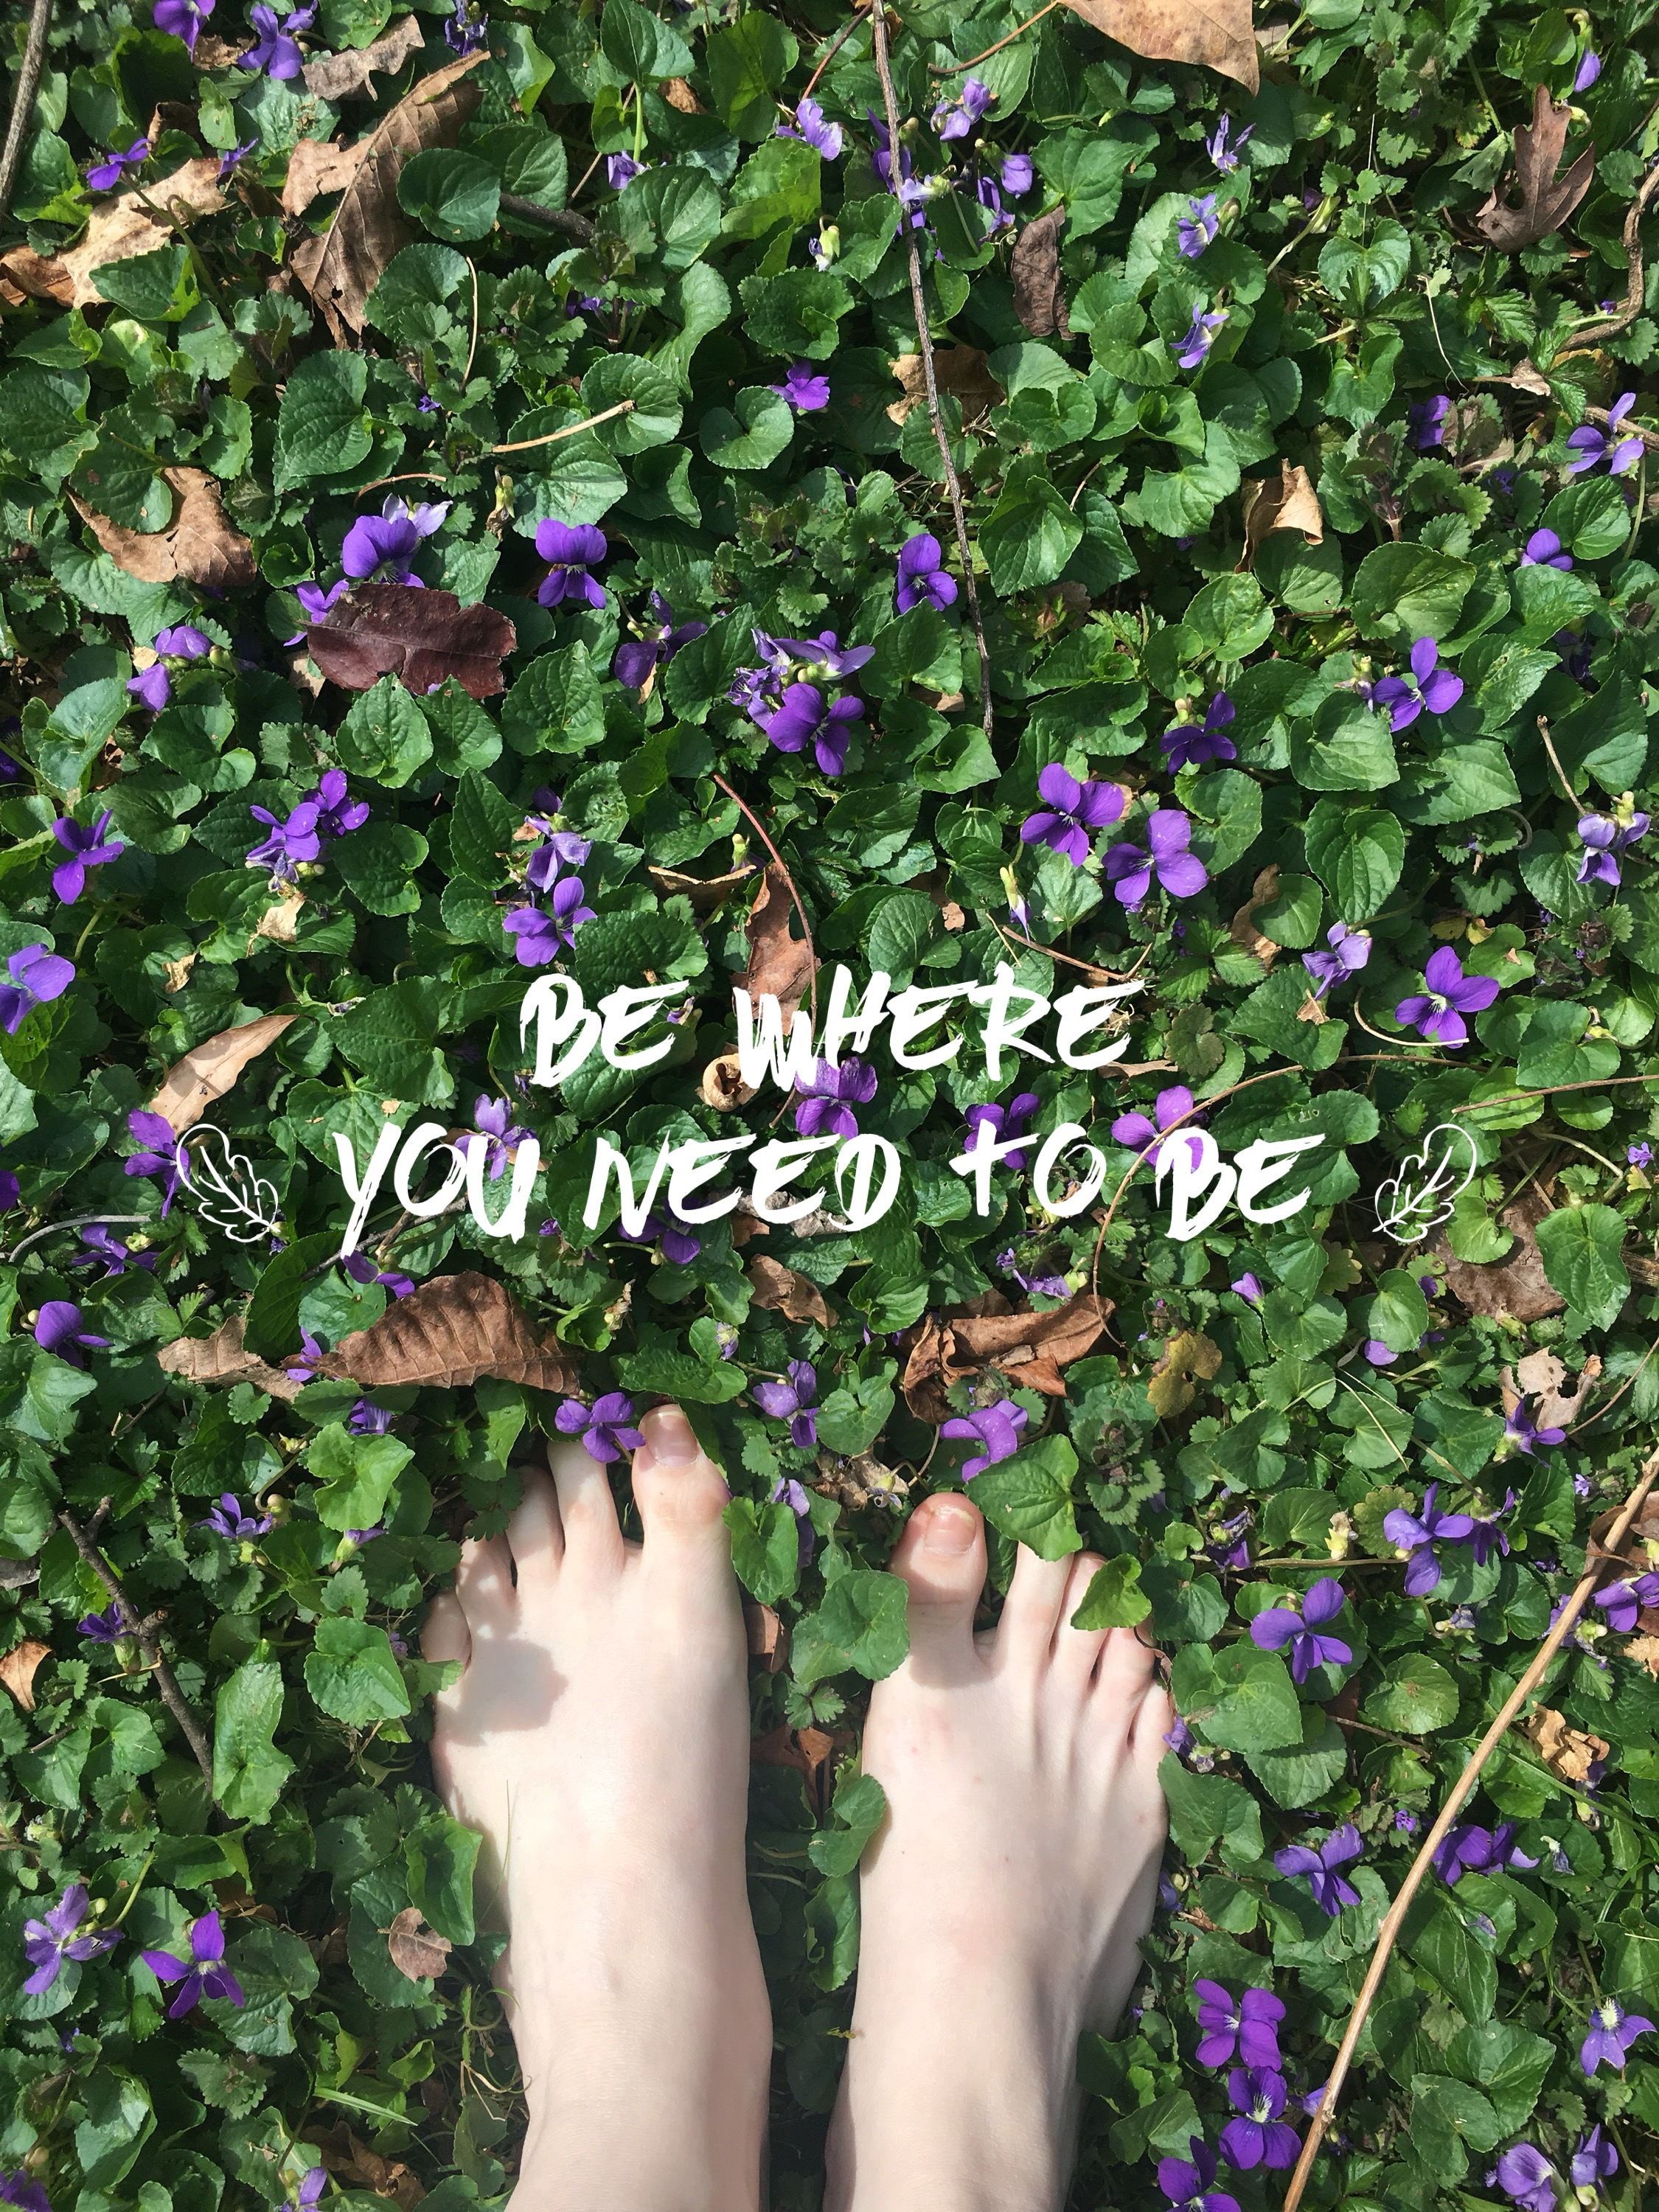 Inspirational Quotes for Women | Depression Quotes | Health and Wellness Quotes | Encouraging Quotes | Bare feet | purple flowers | field of flowers | Jasper & Fern | www.jasperandfern.com